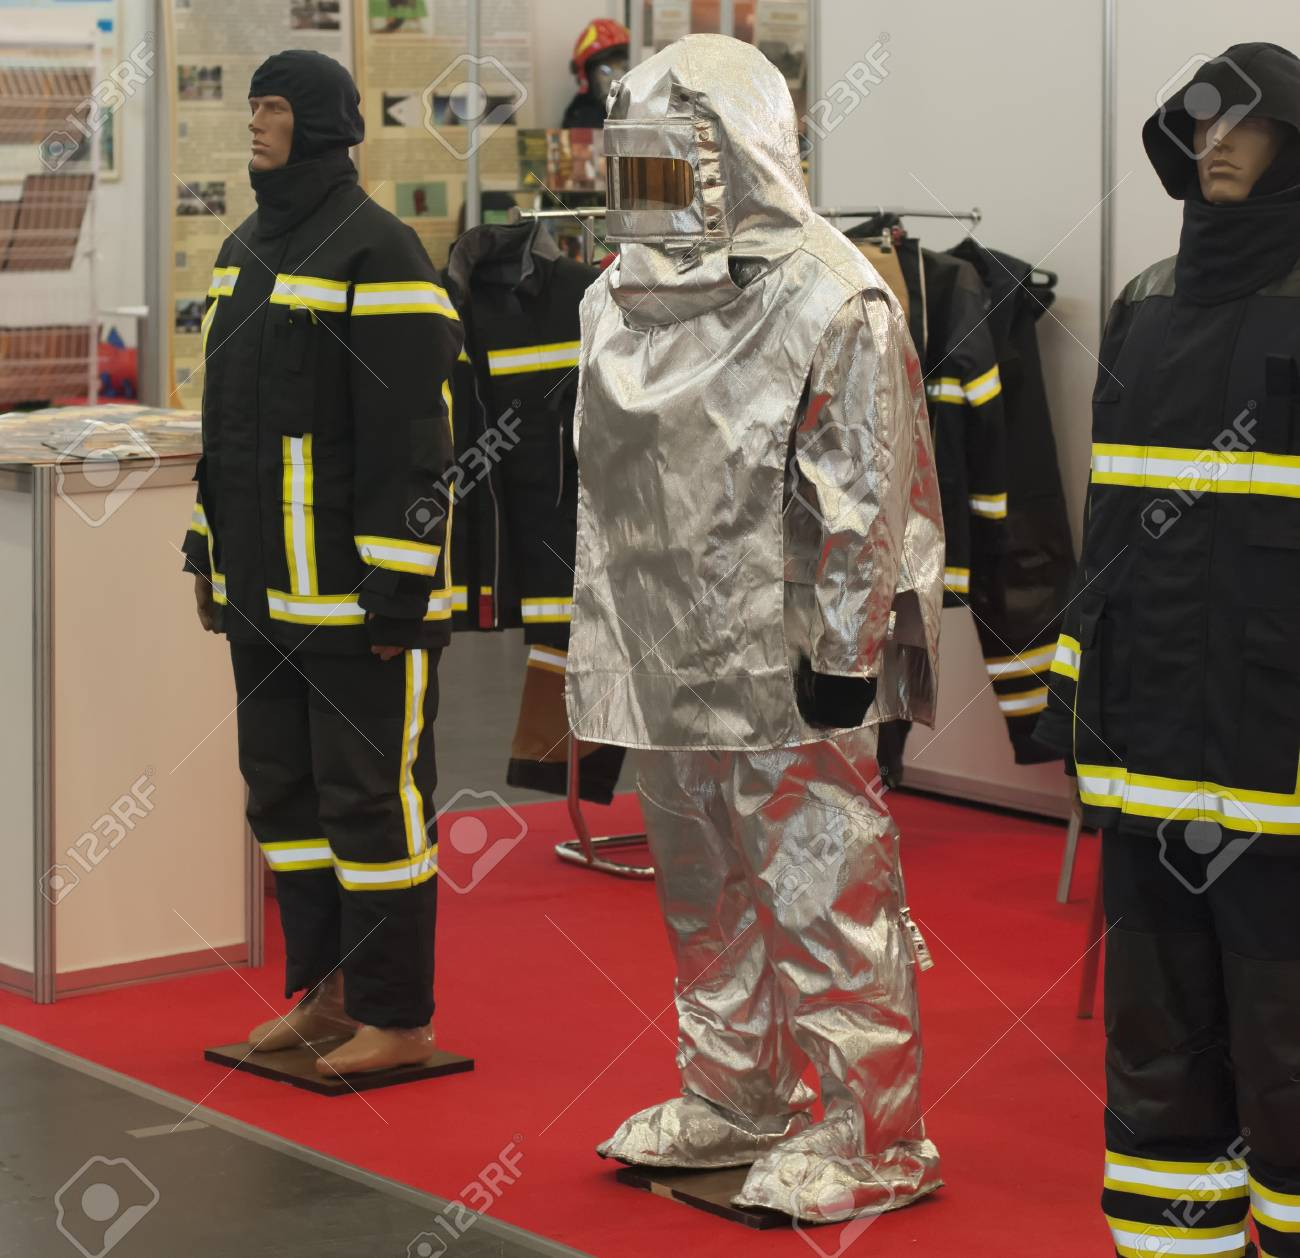 firefighter working clothes (protection from fire uniform) - 116150397